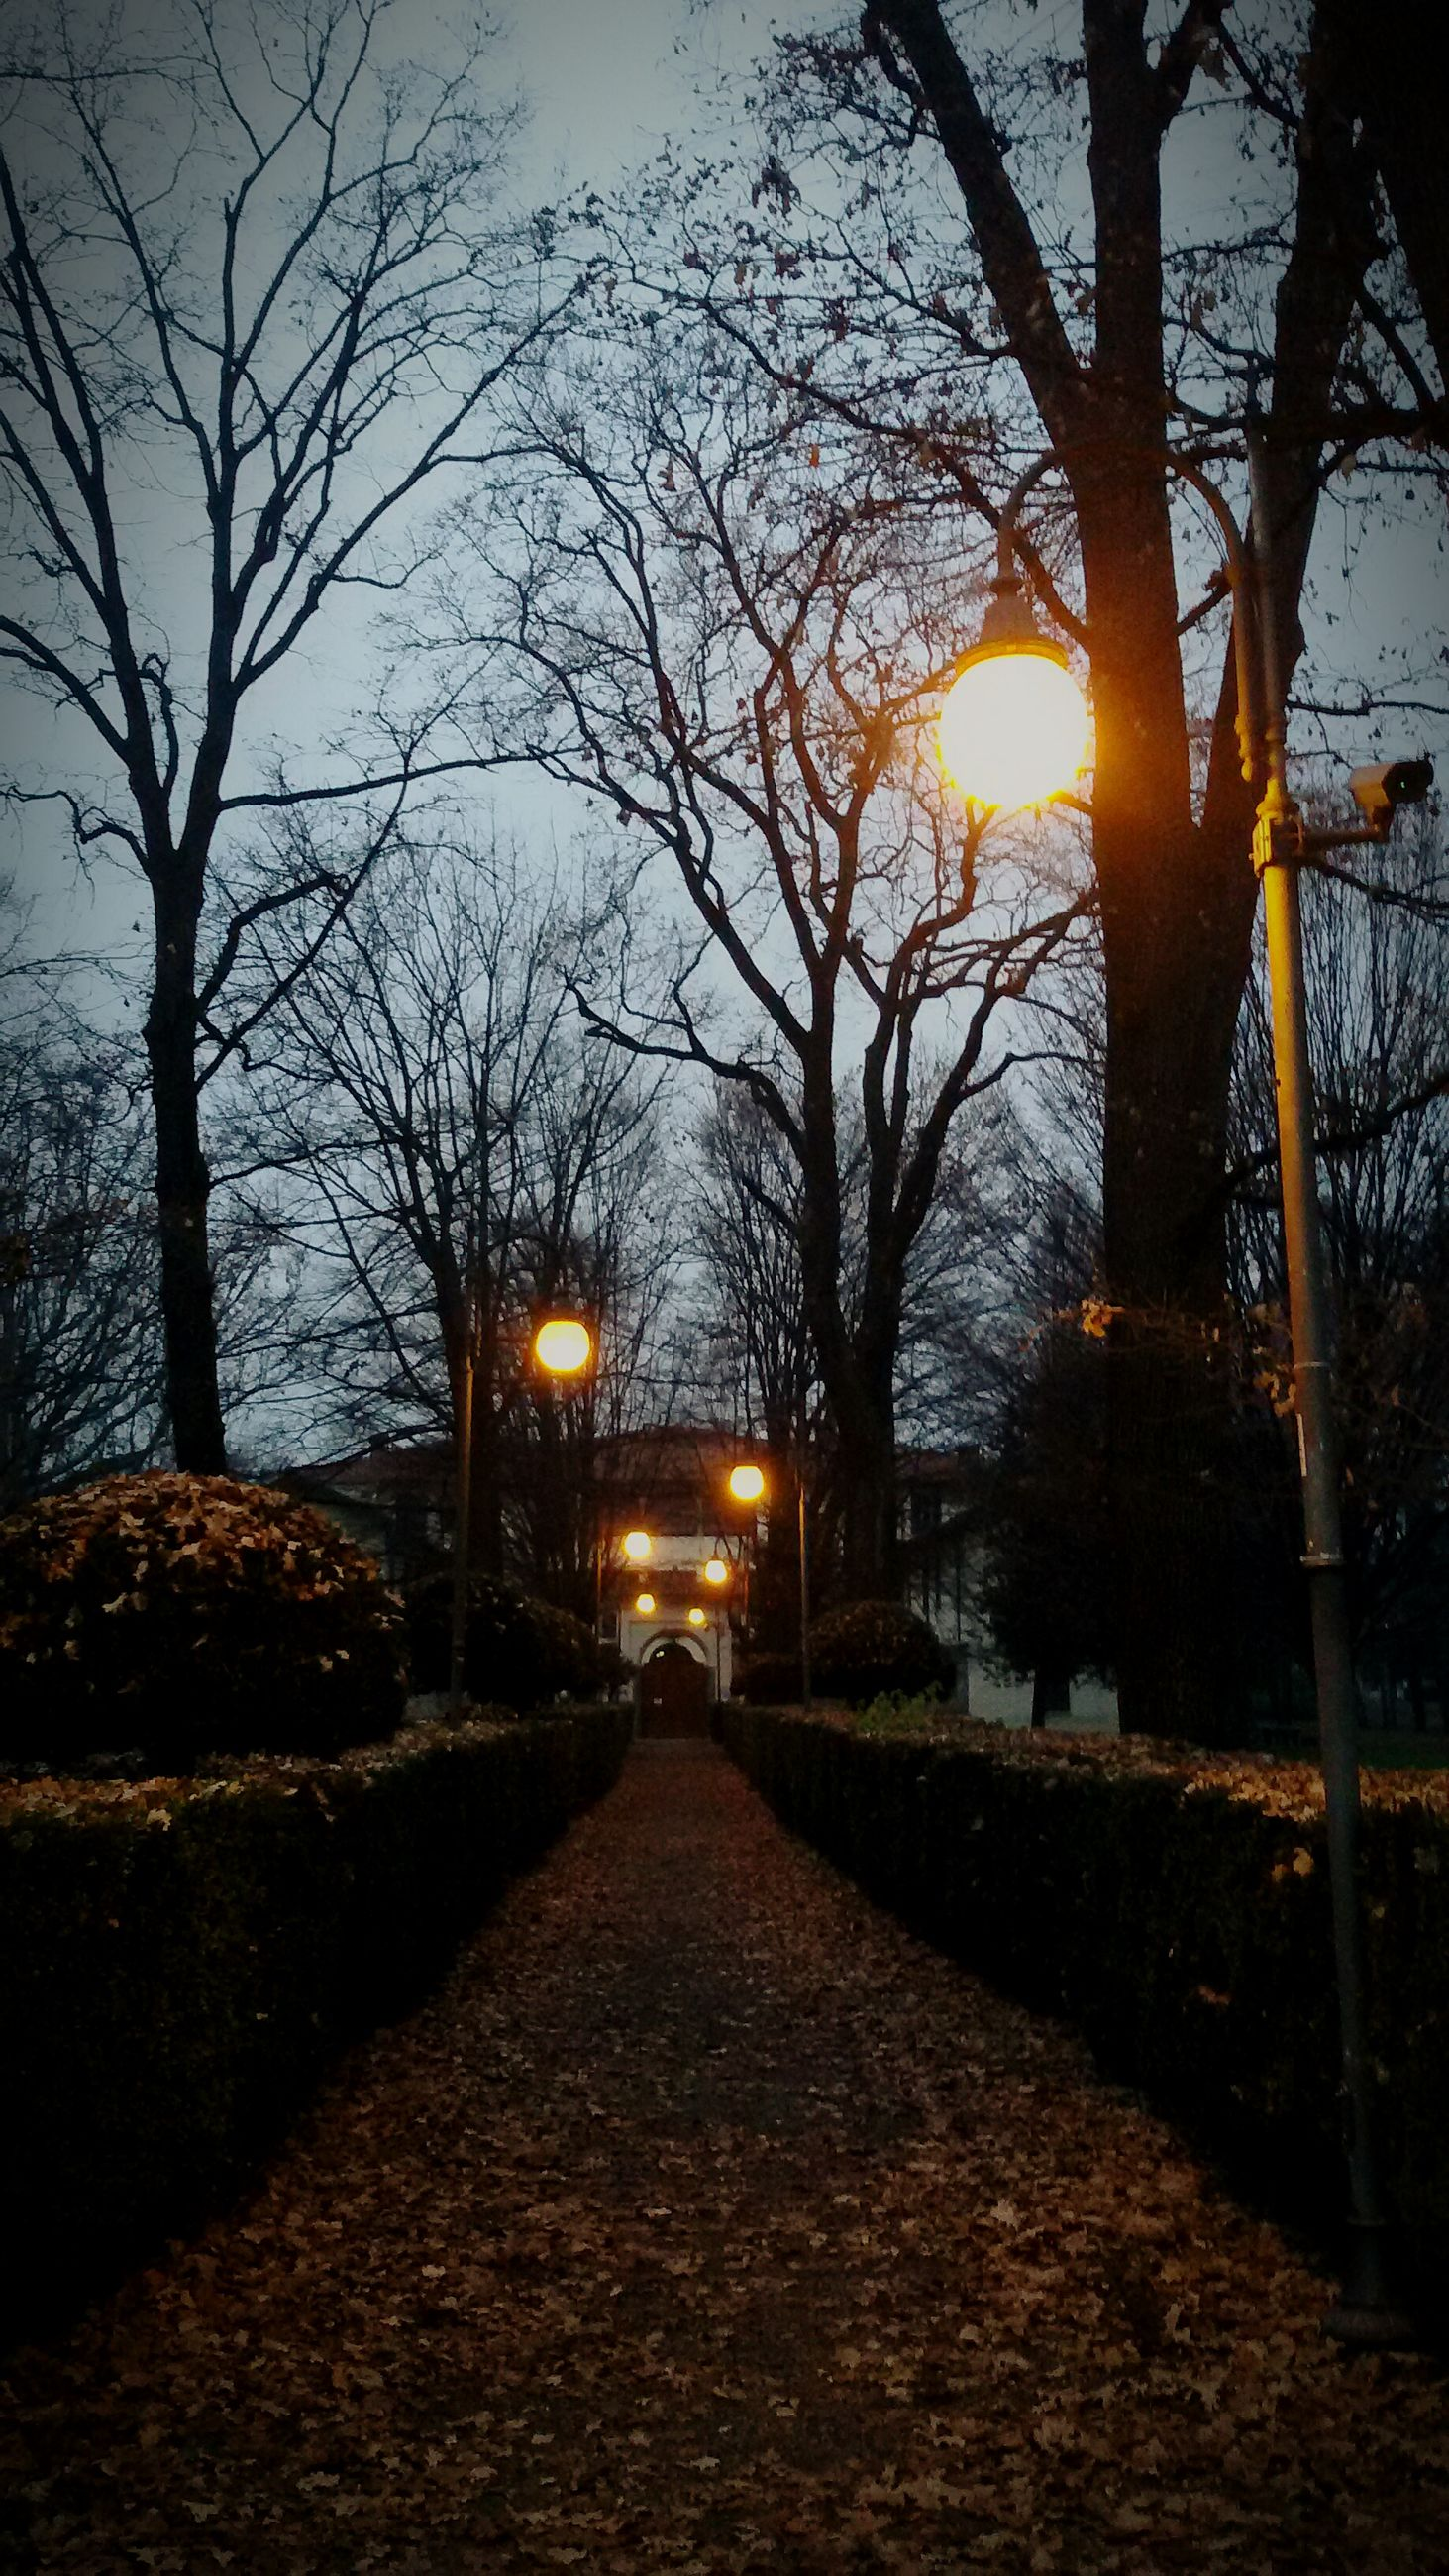 sunset, tree, bare tree, the way forward, illuminated, sun, street light, sky, orange color, branch, diminishing perspective, silhouette, street, tranquility, nature, lighting equipment, vanishing point, footpath, outdoors, built structure